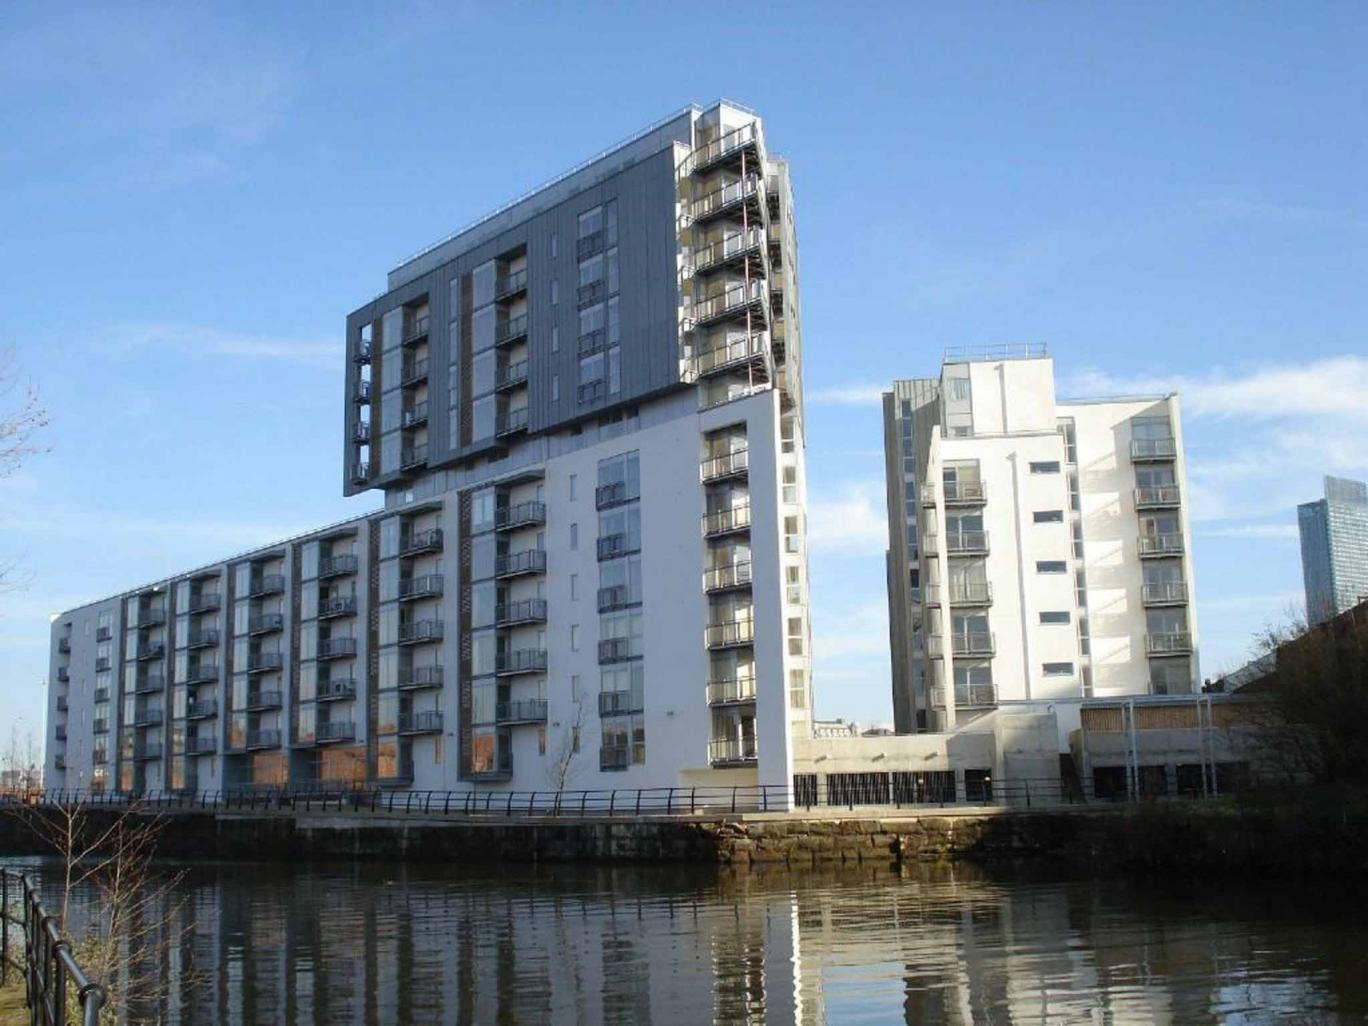 Two bedroom flat for sale, Vie Development, Salford, Manchester M3. On with Jordan Fishwick at £137,500.